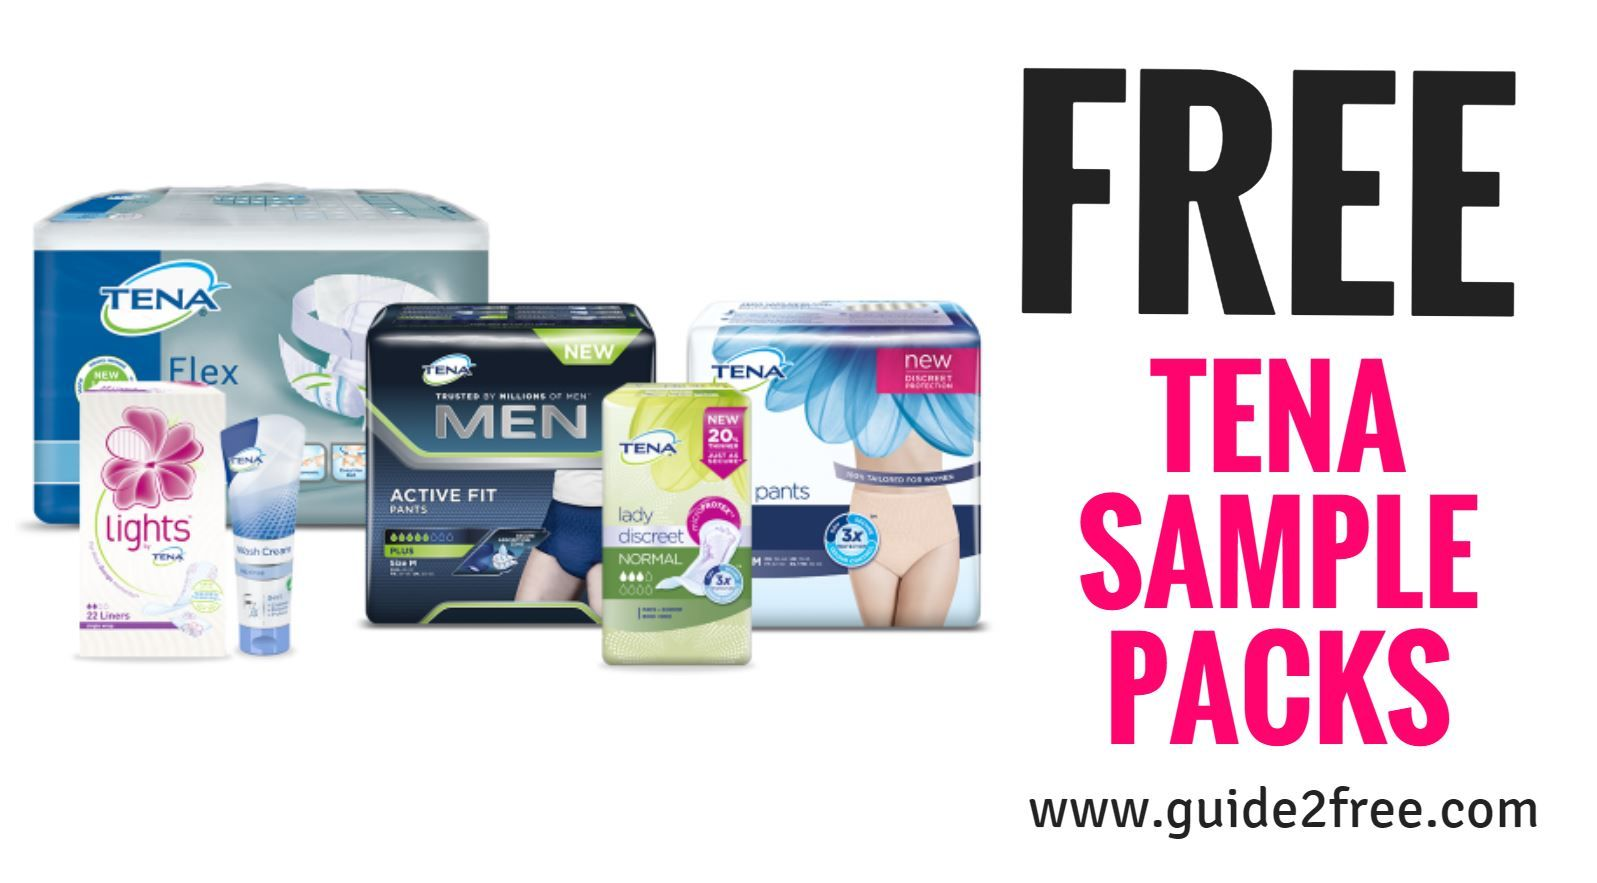 Get a FREE Tena Sample Pack! There are several sample kits